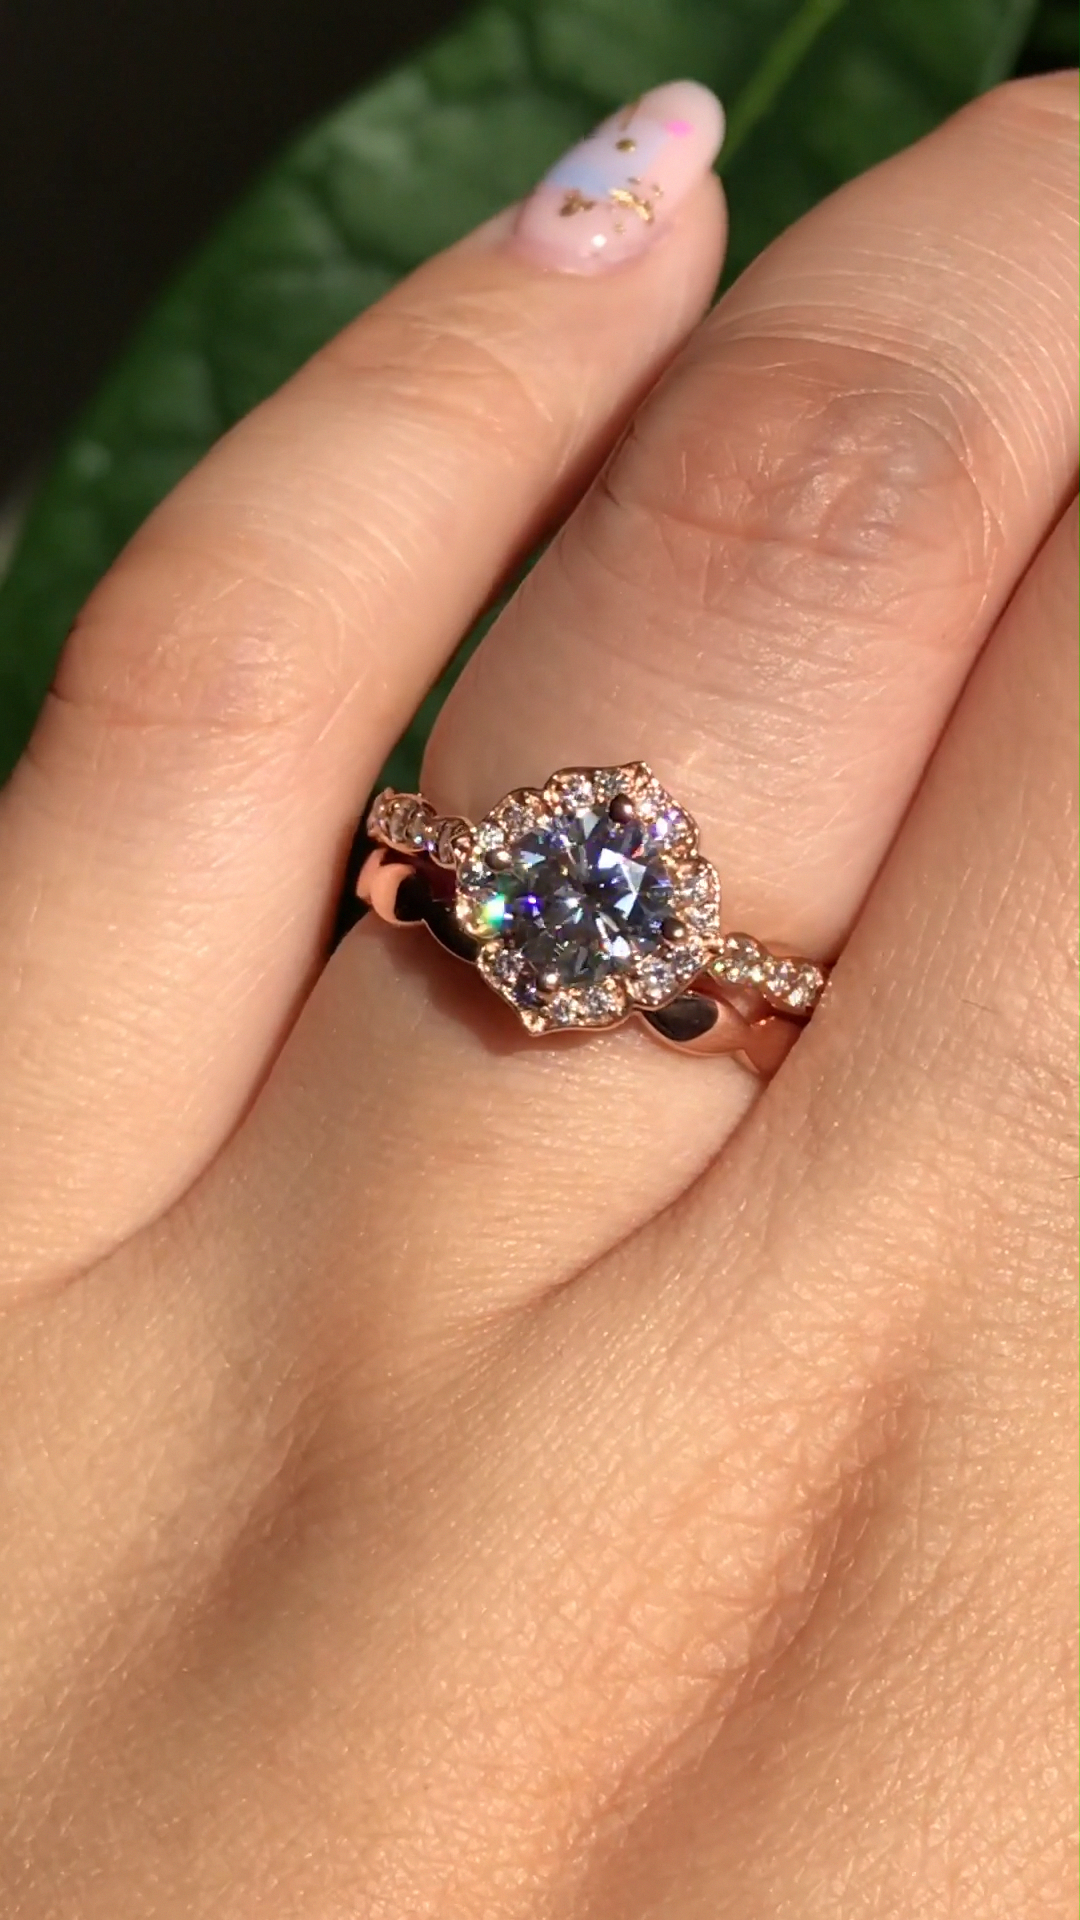 14k Rose Gold Round 7mm Mortganite Solitaire Bezel Engagement Wedding Anniversary Ring - Fine Jewelry Ideas#14k #7mm #anniversary #bezel #engagement #fine #gold #ideas #jewelry #mortganite #ring #rose #solitaire #wedding